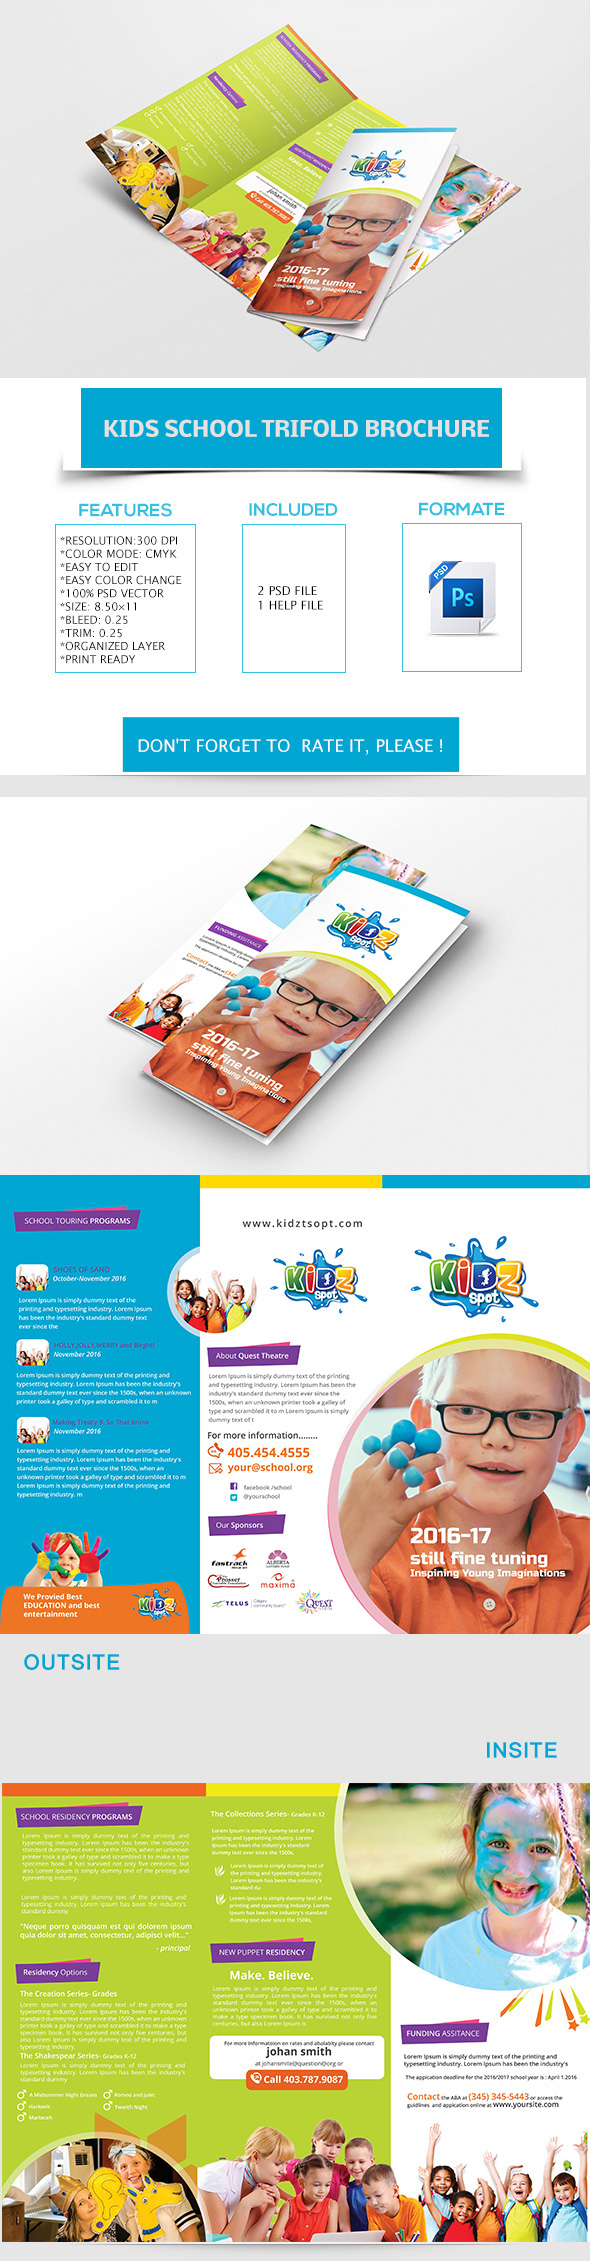 Kid s school trifold brochure template free download on for Brochure templates for school project